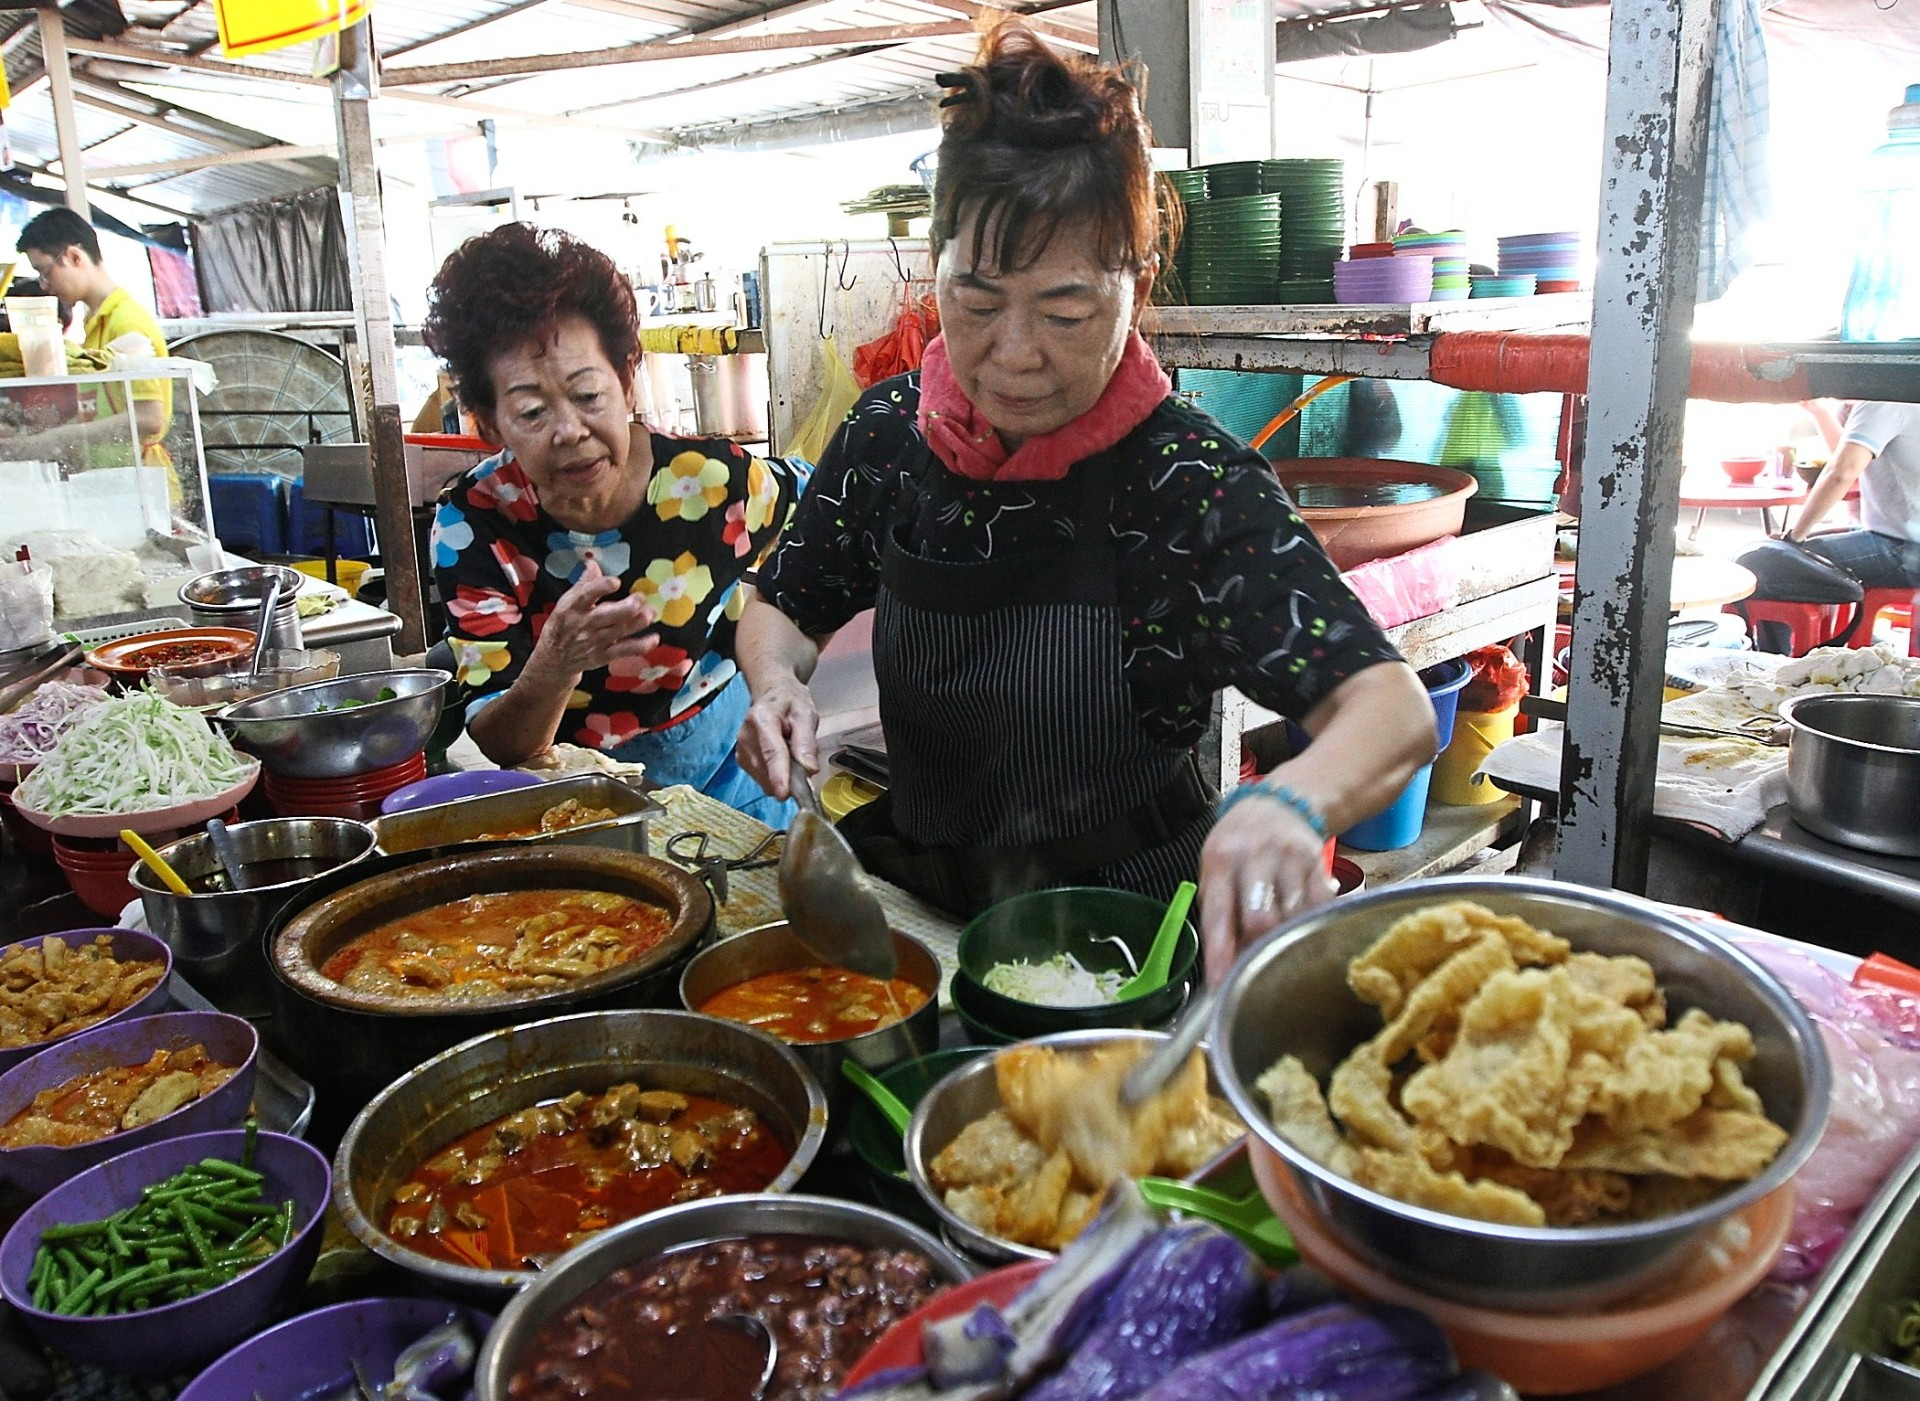 Head to the Tun H.S. Lee Hawker Centre for a hearty bowl of noodles.